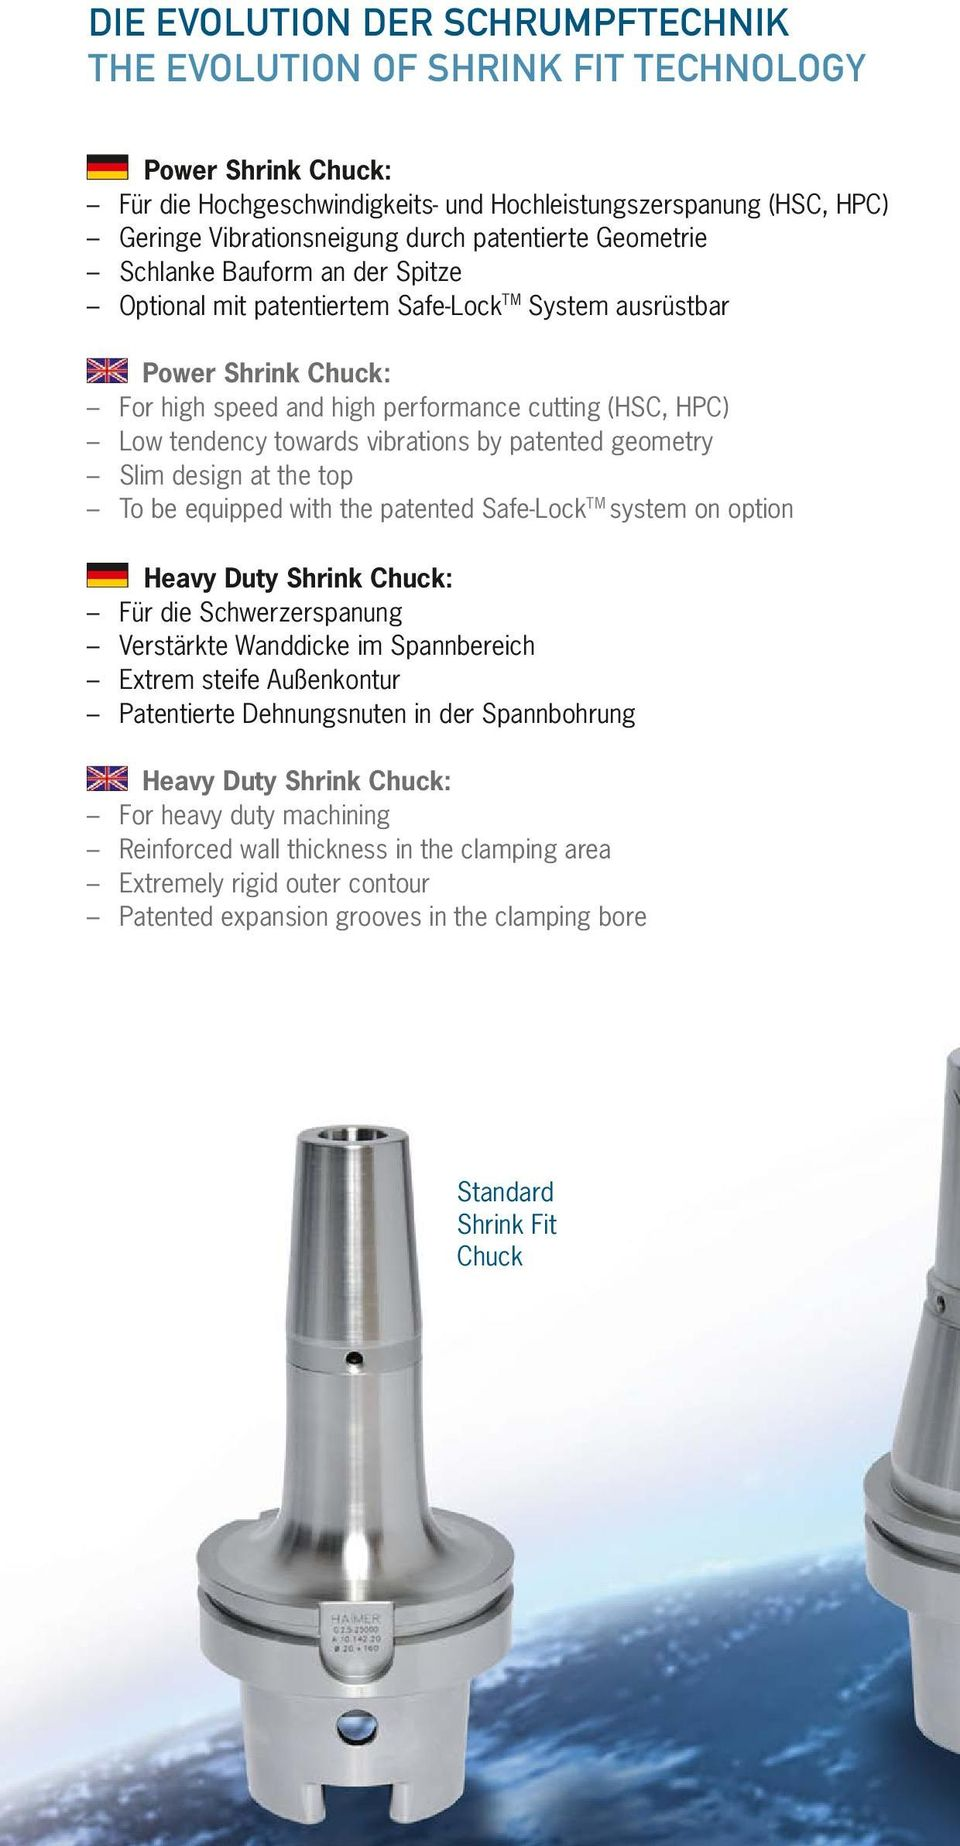 towards vibrations by patented geometry Slim design at the top To be equipped with the patented Safe-Lock TM system on option Heavy Duty Shrink Chuck: Für die Schwerzerspanung Verstärkte Wanddicke im